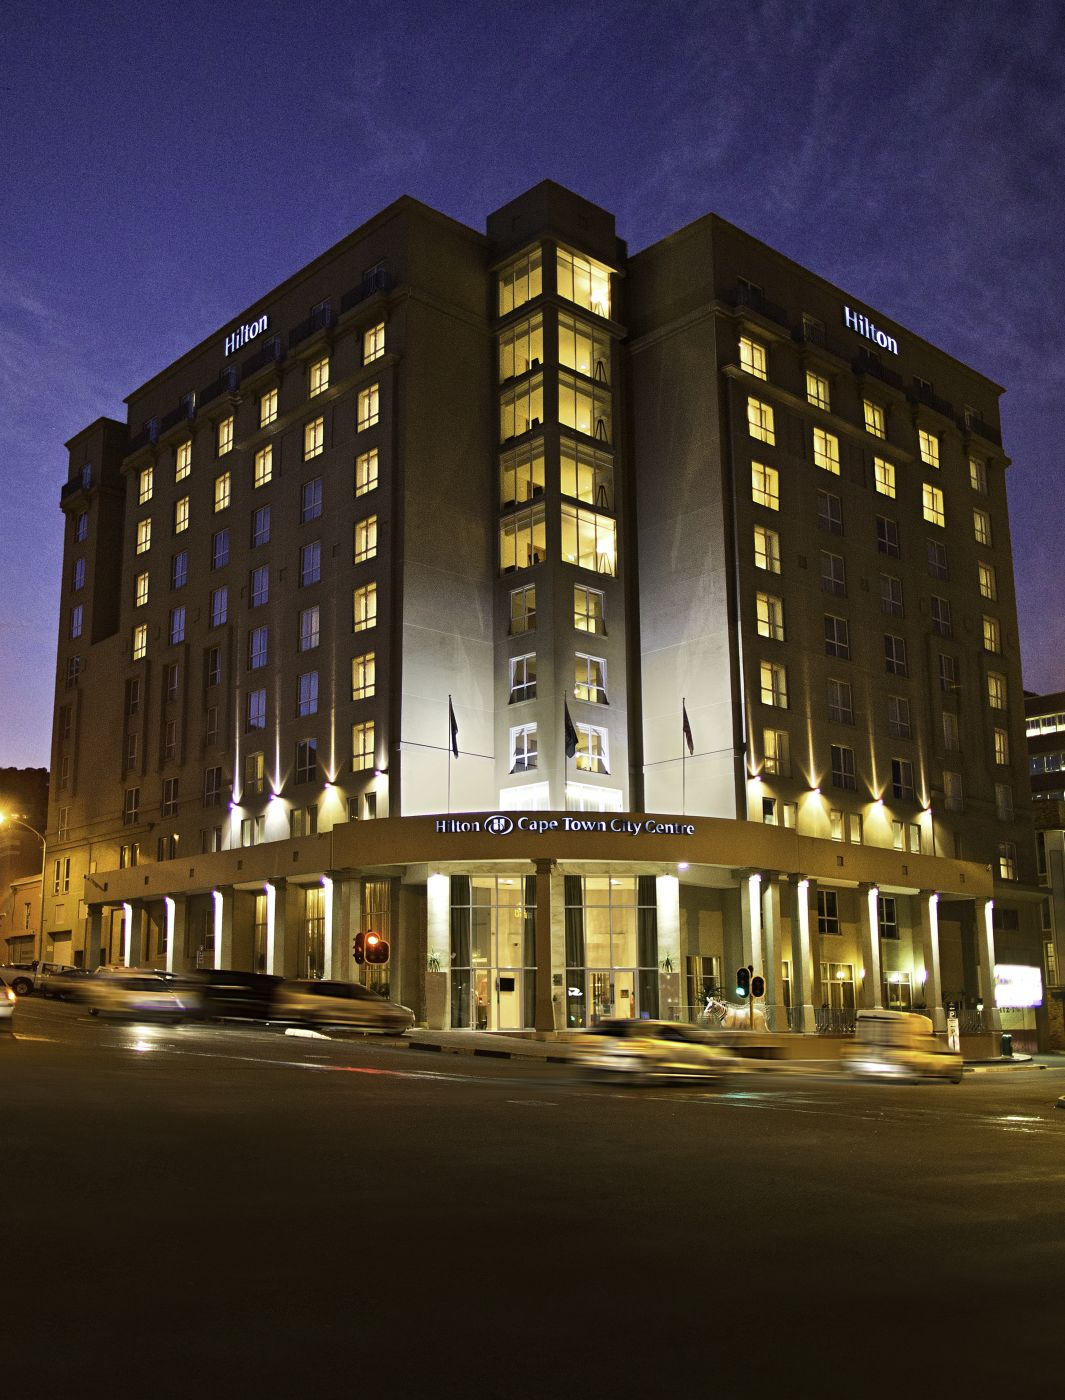 Exterior of Hilton Cape Town hotel